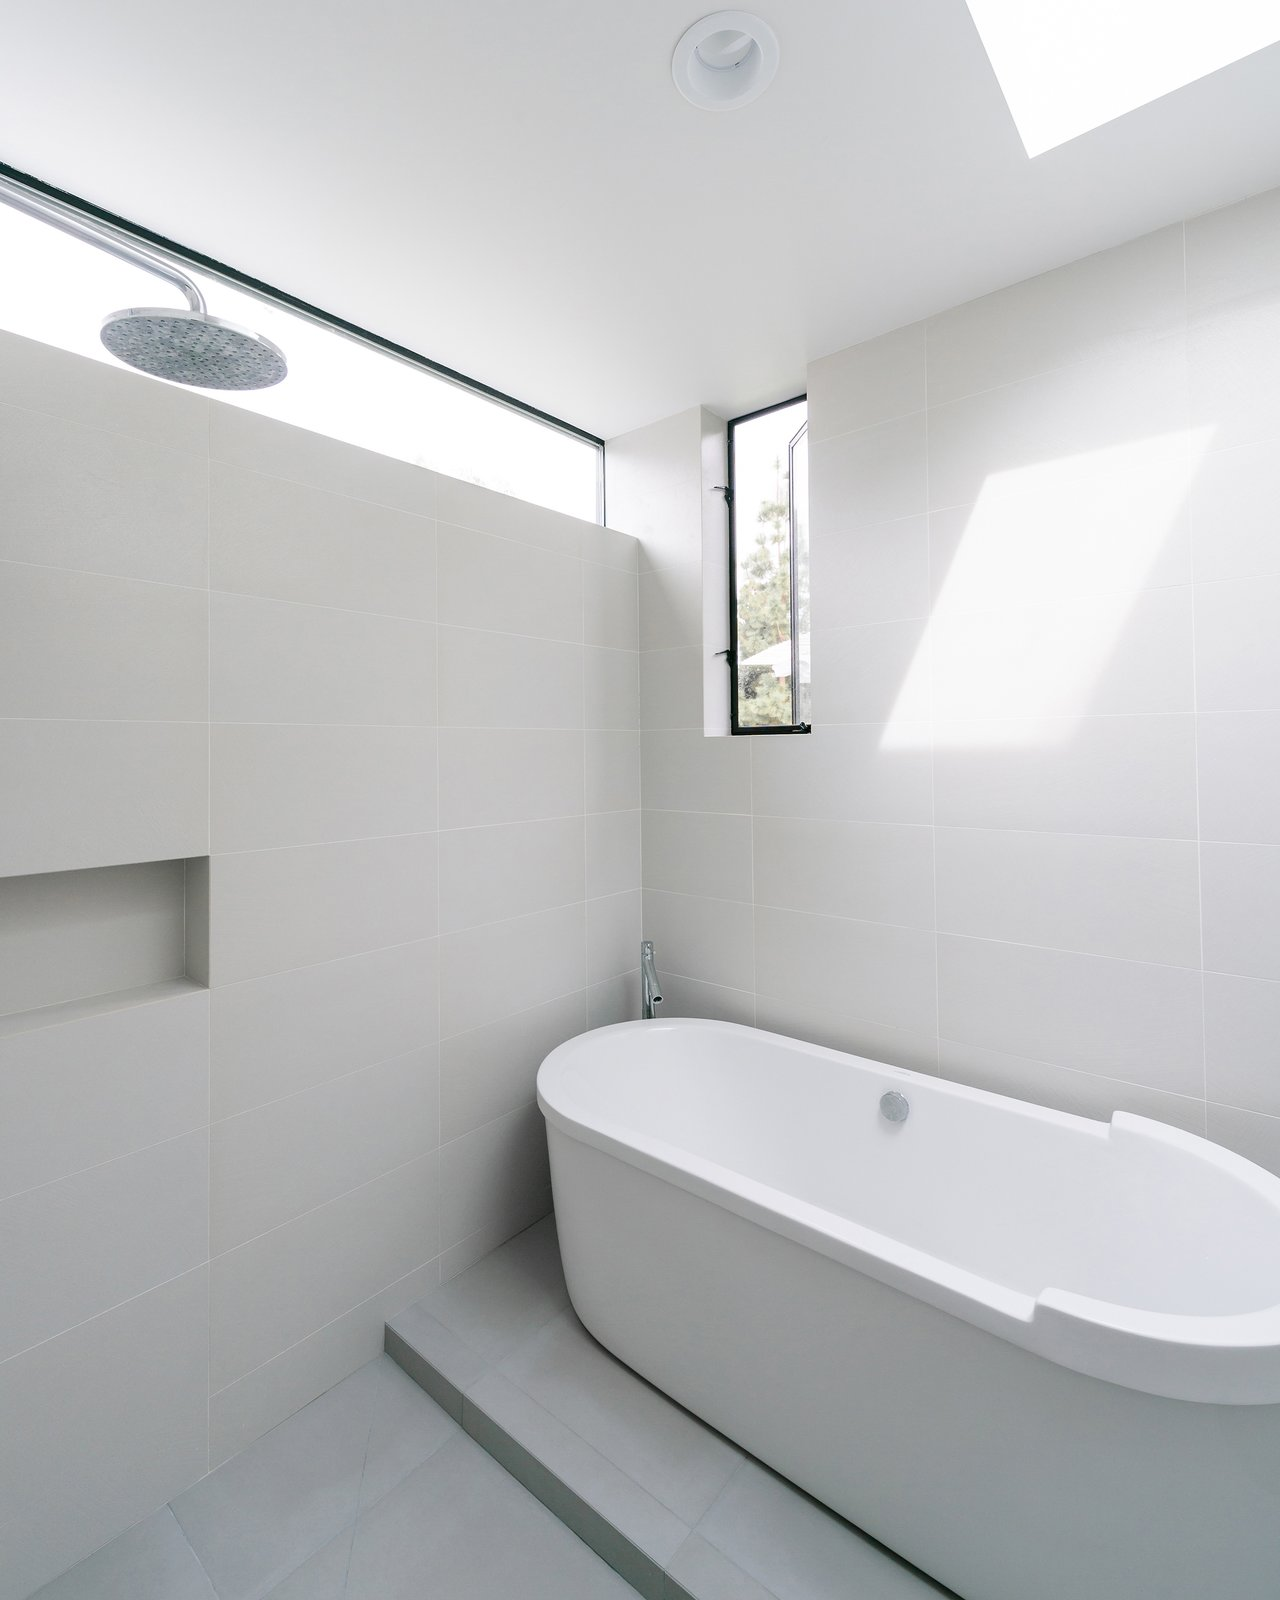 At the rear of the home, the master suite addition adds a full wet room with skylight, a rain shower and freestanding tub.